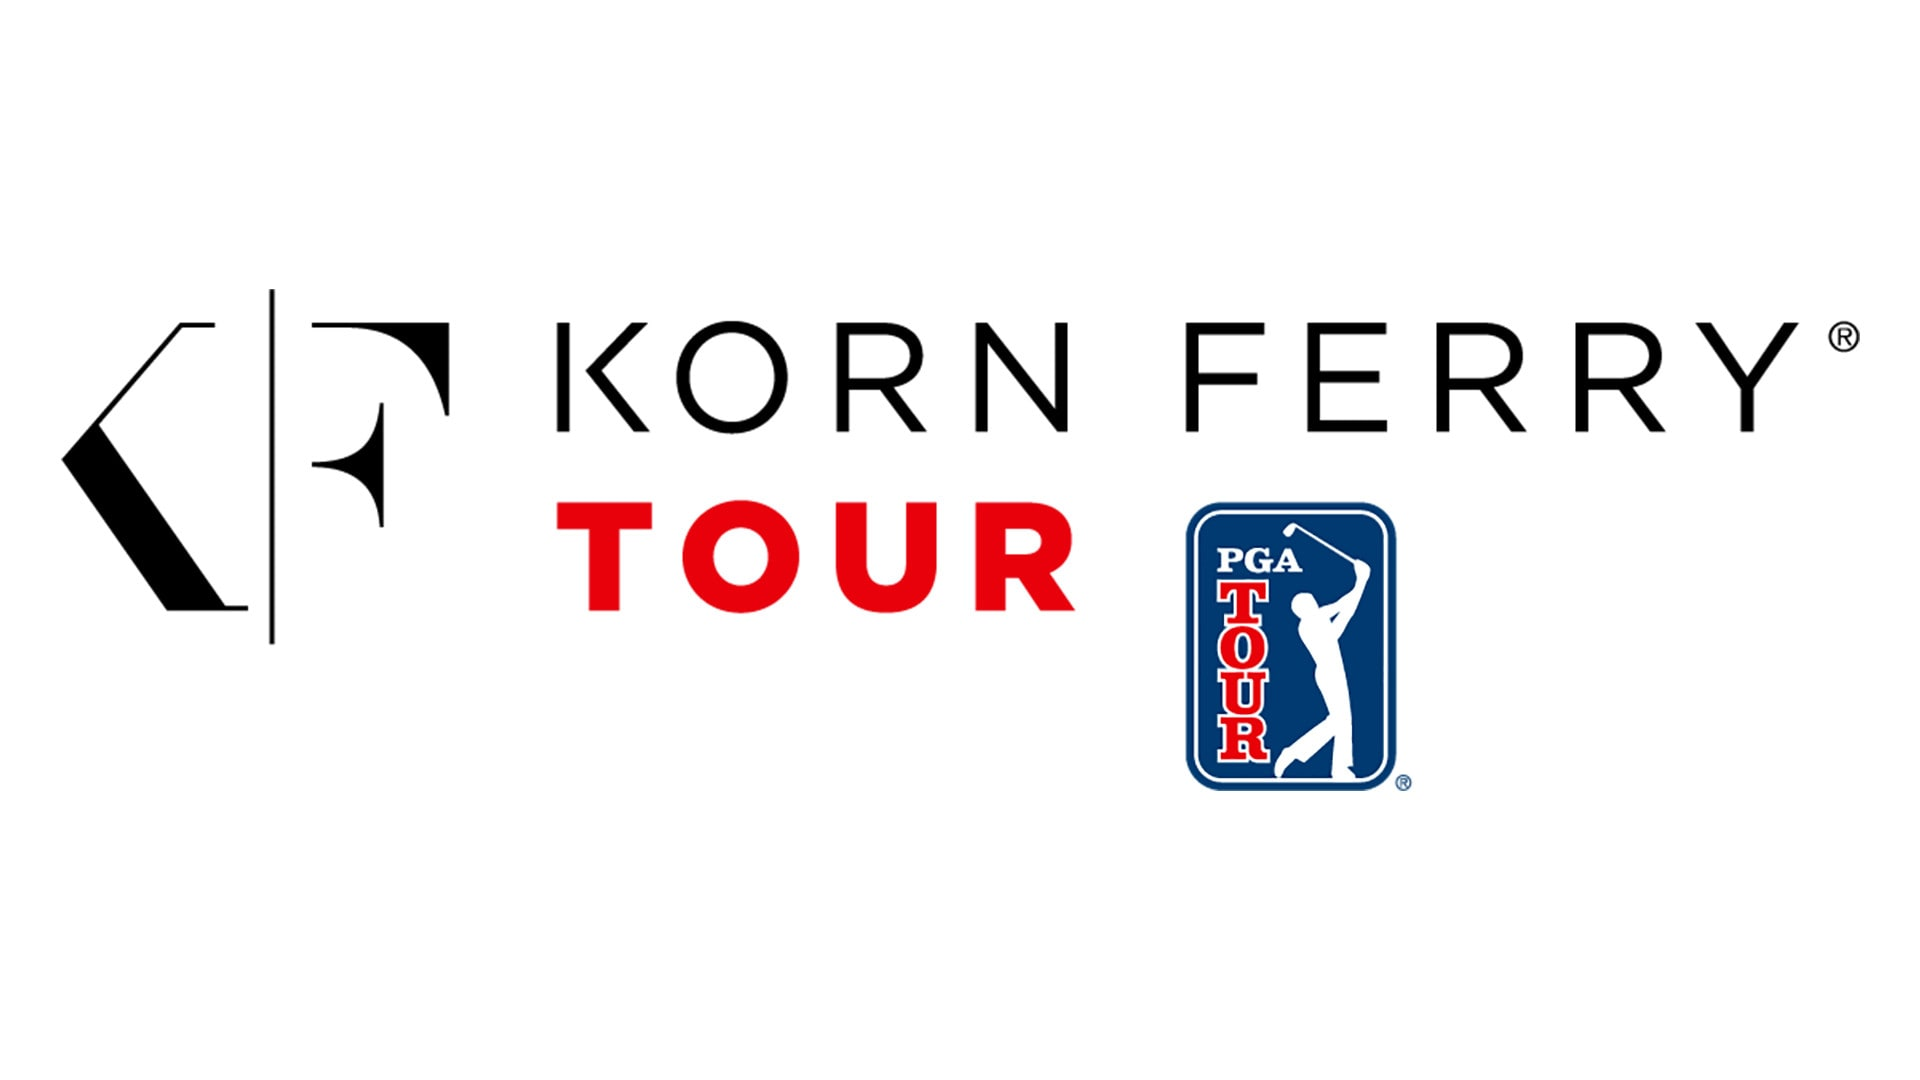 New Korn Ferry Tour logo